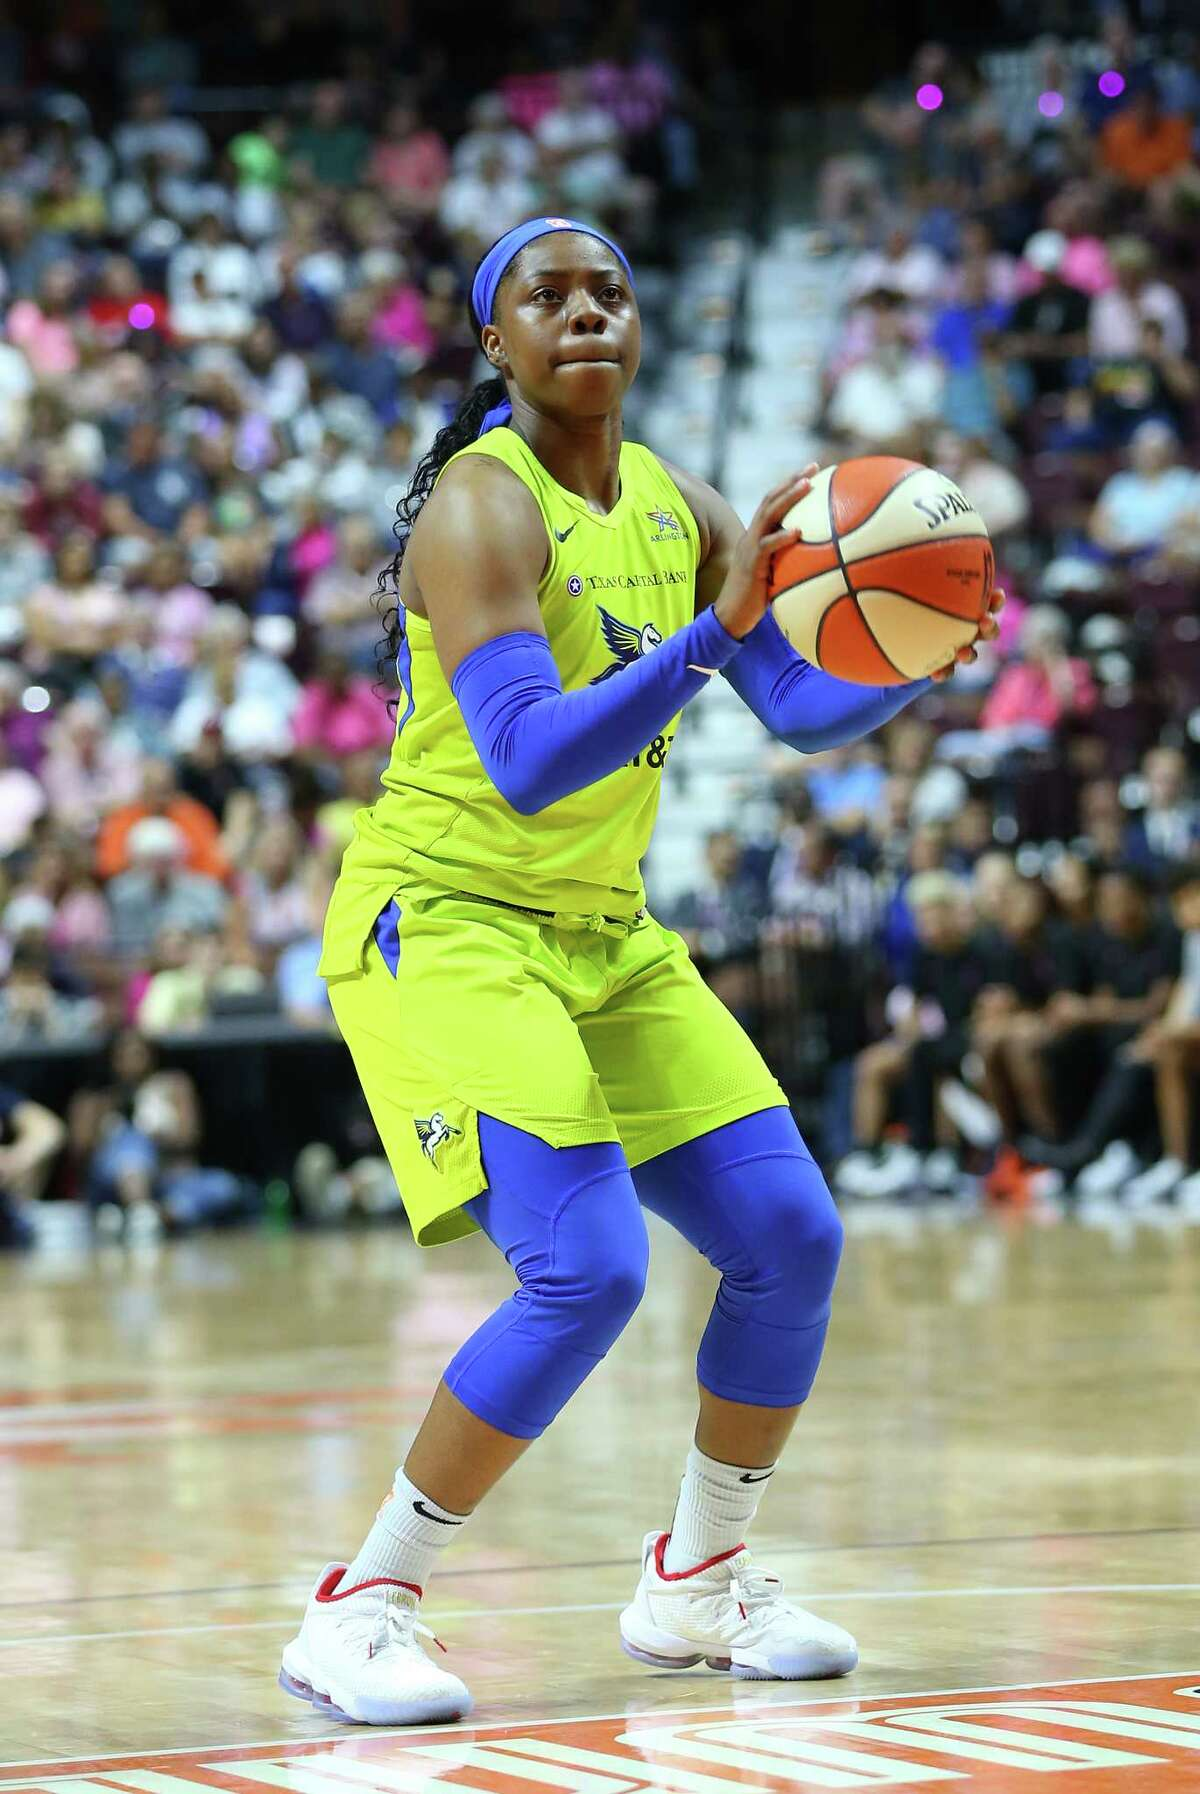 UNCASVILLE, CT - AUGUST 18: Dallas Wings guard Arike Ogunbowale (24) attempt free throws during a WNBA game between Dallas Wings and Connecticut Sun on August 18, 2019, at Mohegan Sun Arena in Uncasville, CT. (Photo by M. Anthony Nesmith/Icon Sportswire via Getty Images)